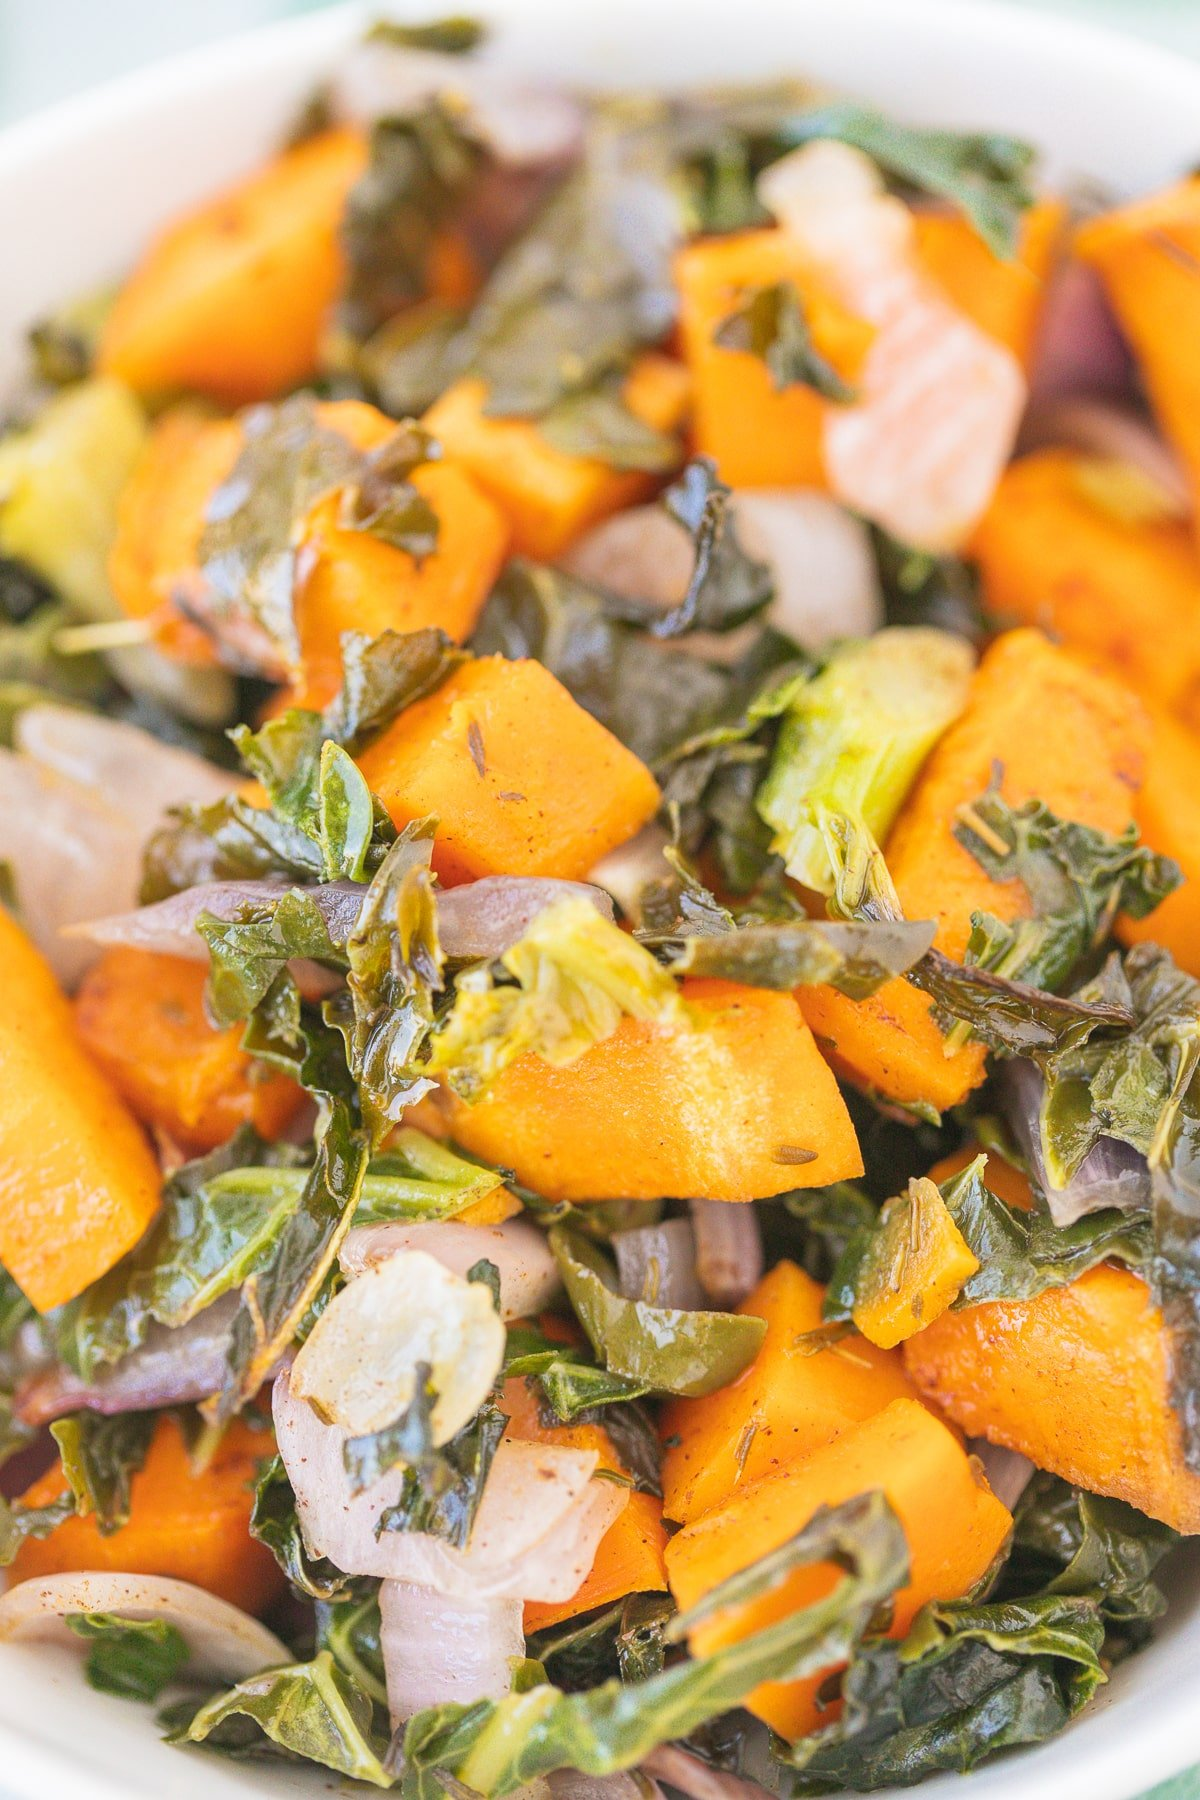 bowl of sweet potatoes and kale